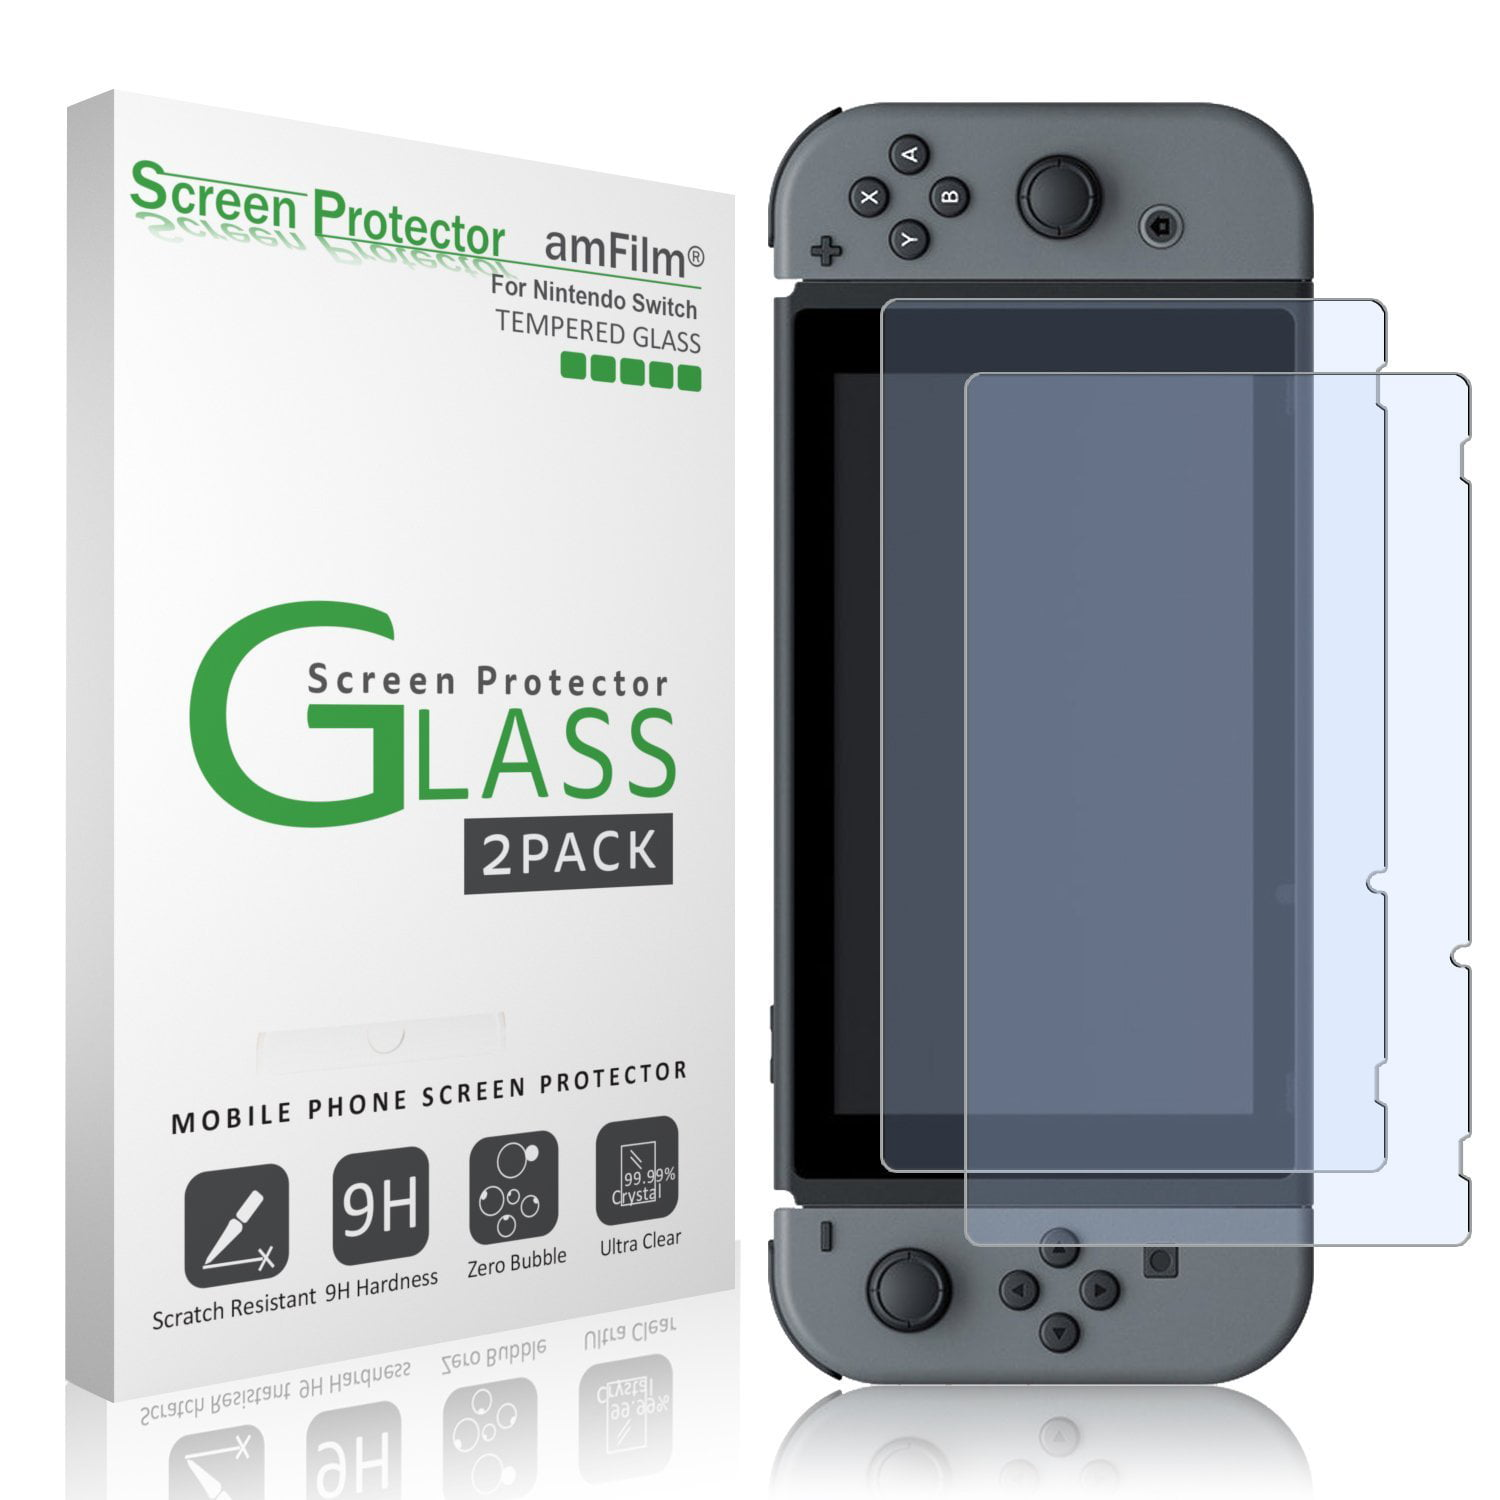 nintendo switch screen protector glass 2pack amfilm nintendo switch tempered glass screen protector for nintendo switch walmartcom